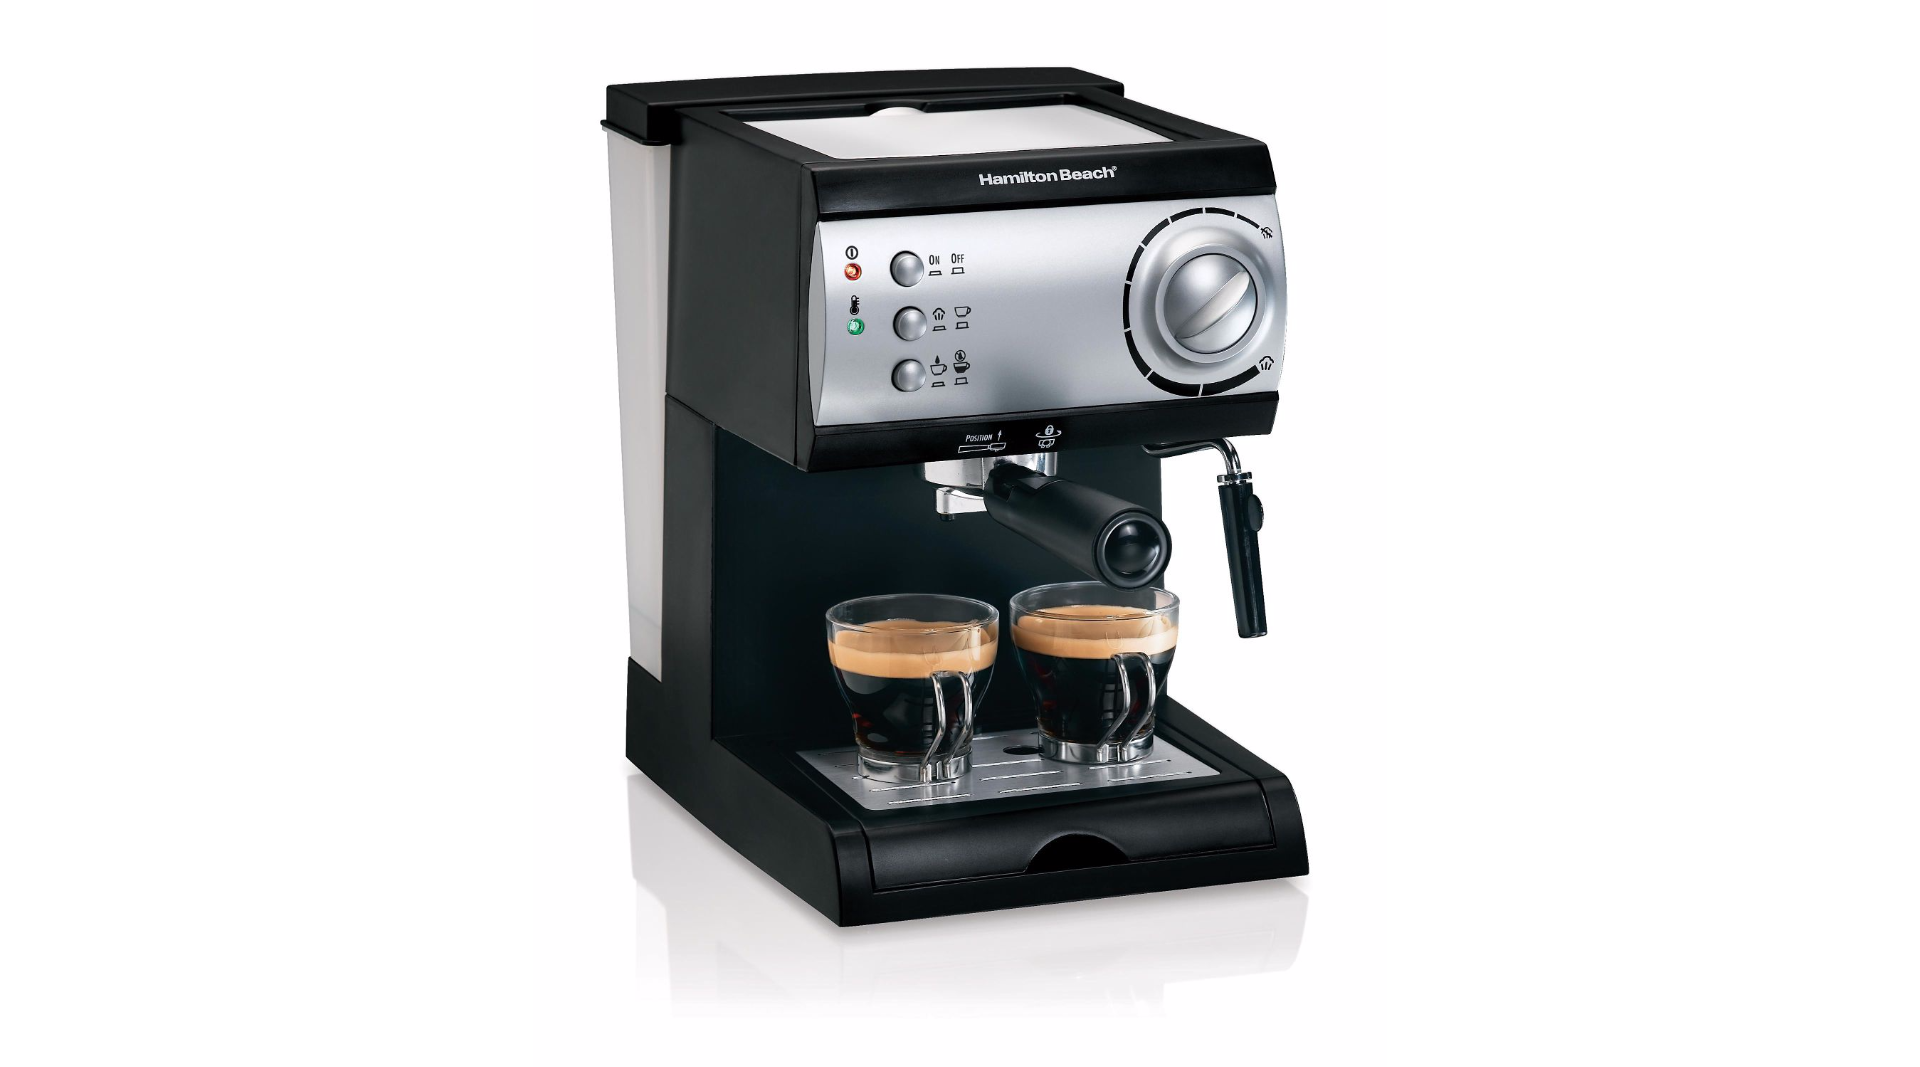 Coffee Maker Comparison Hhgregg By Erica Schoonover Infographic